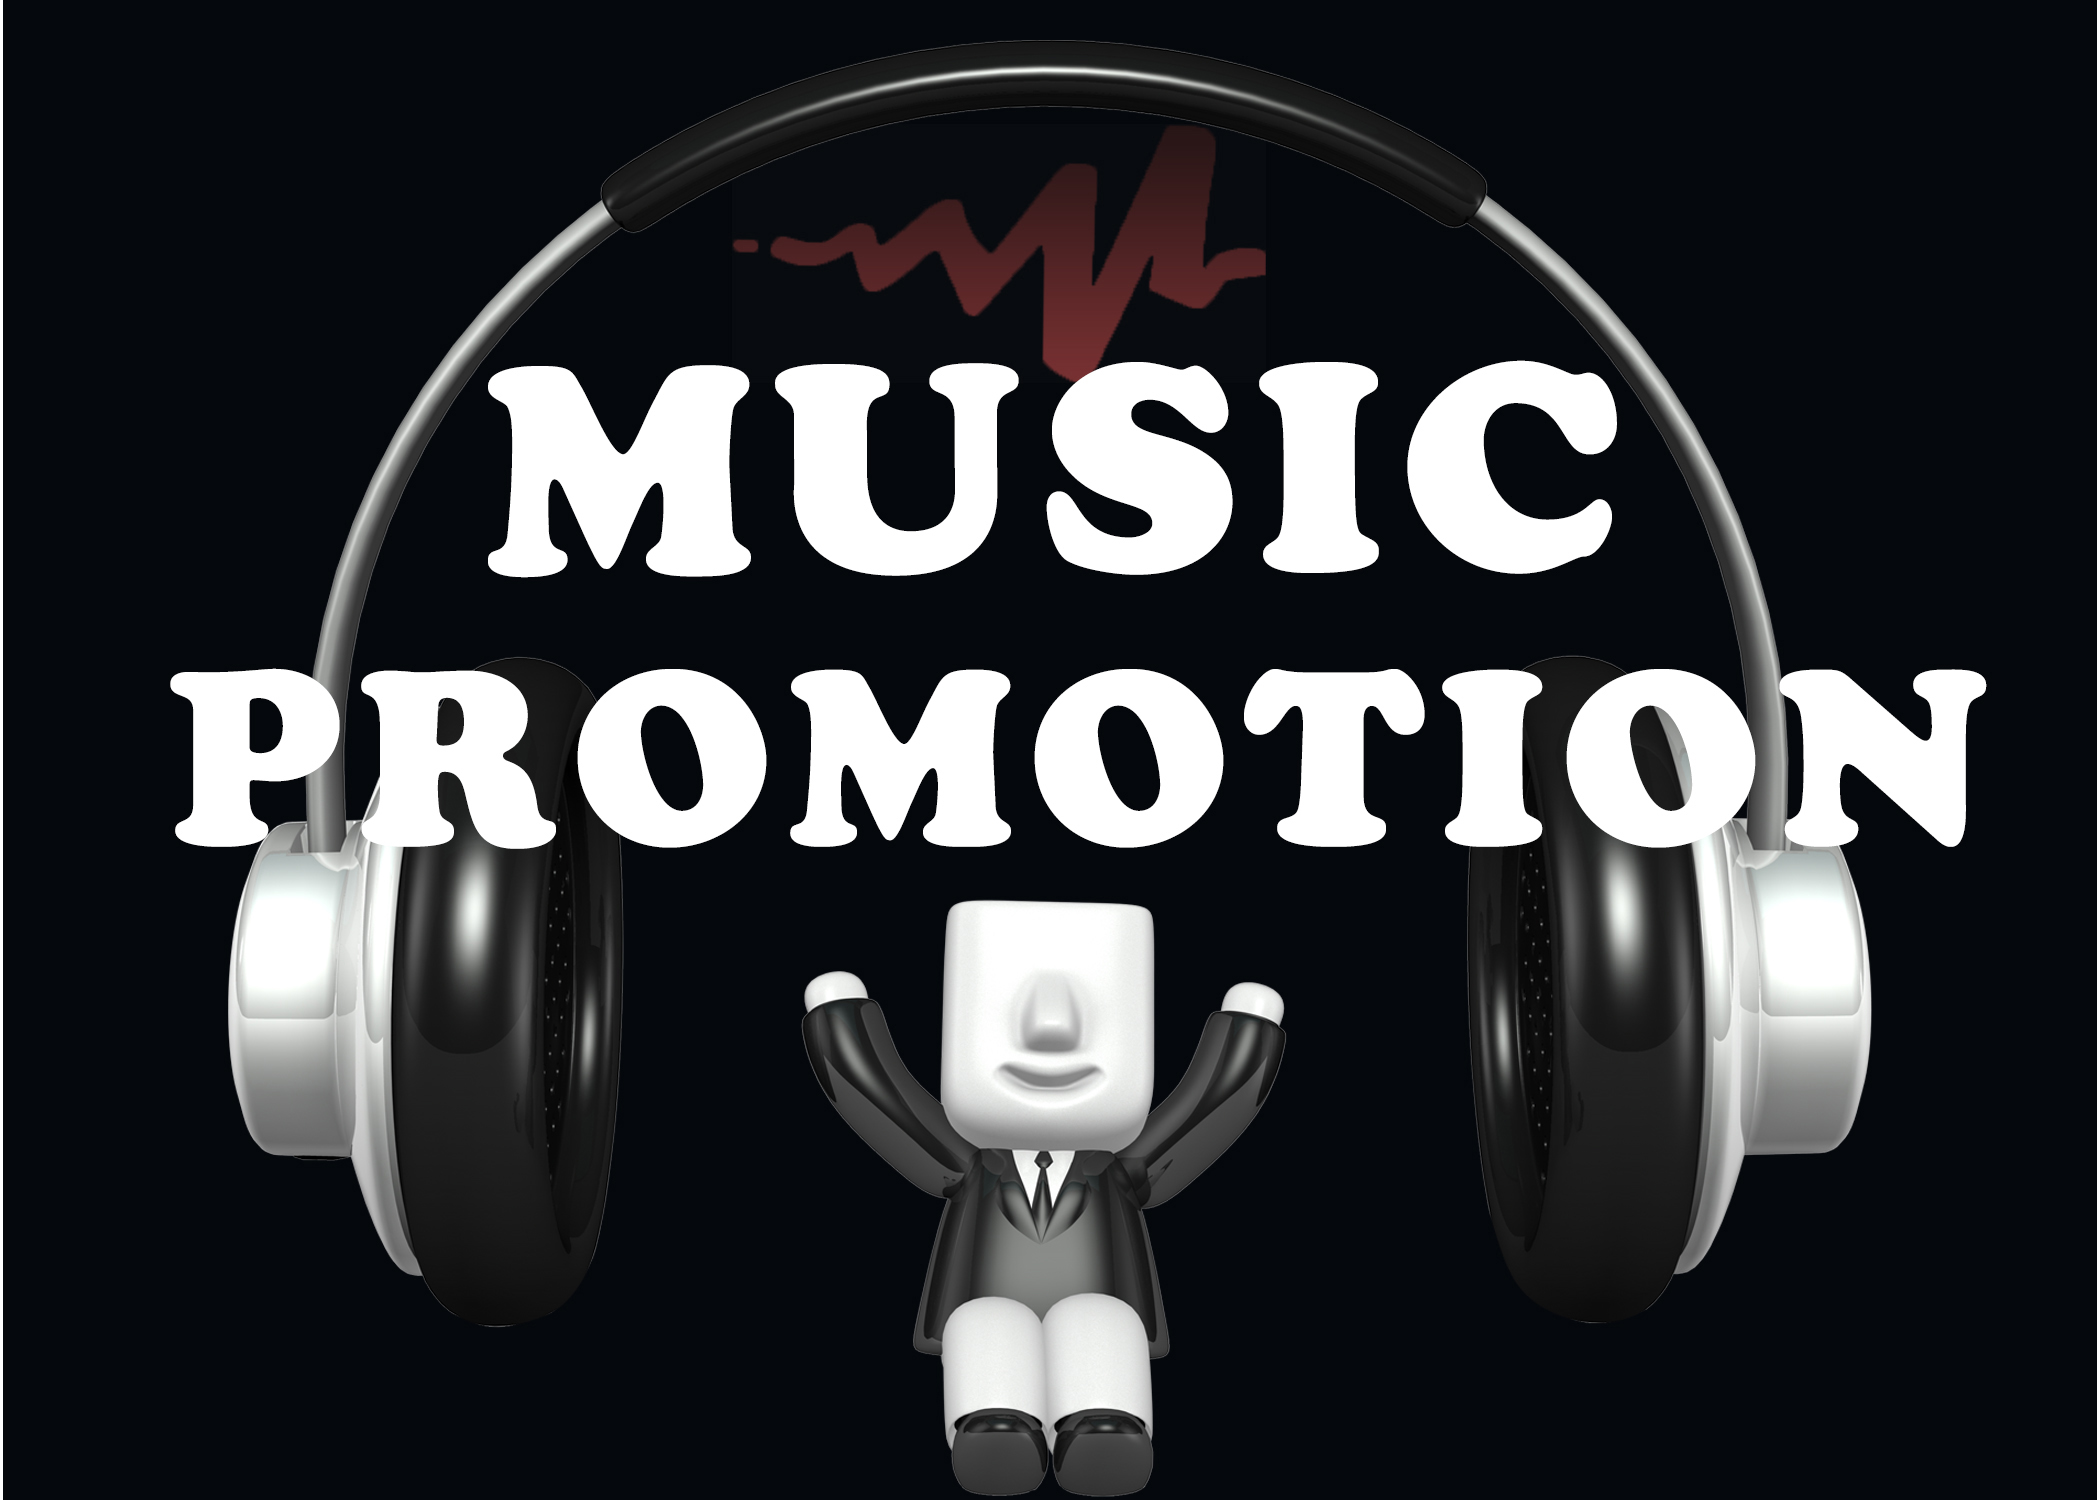 Buy High Quality Audio & Music Promotion Through Real Audience